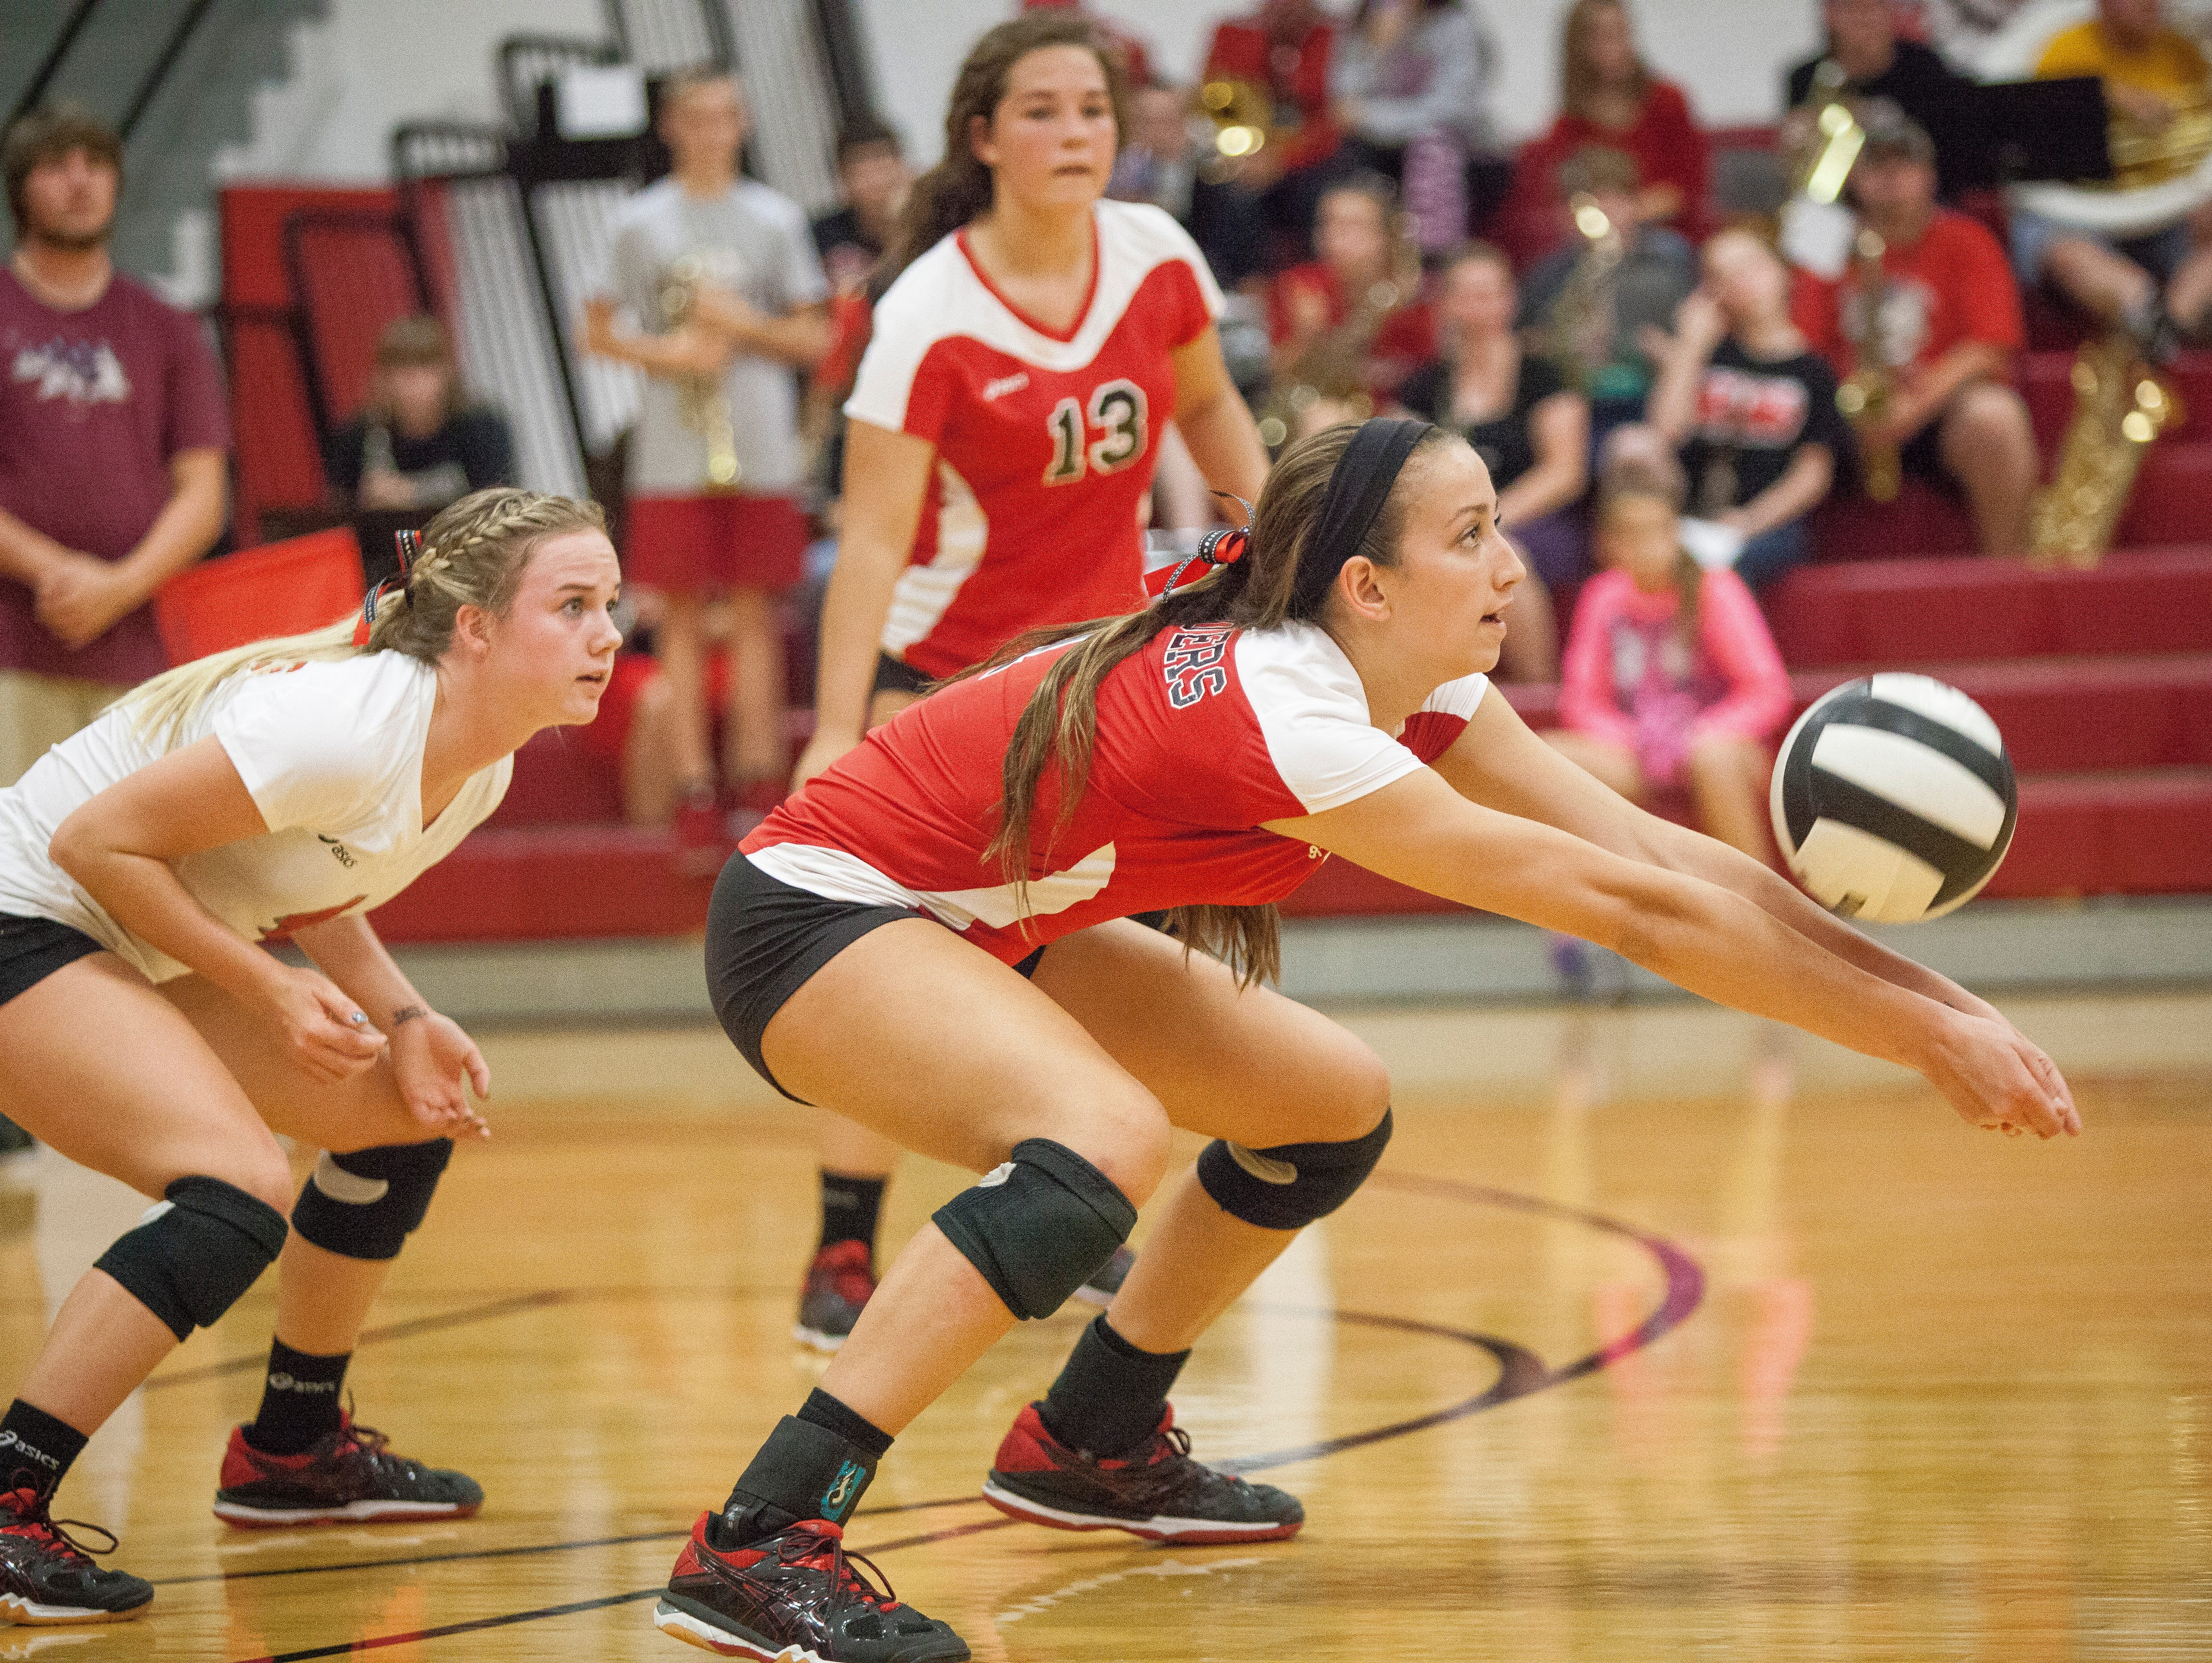 Skyler VanNote the middle blocker for Wapahani returns the serve from Central on Monday at Wapahani High School. Central won 3-0.